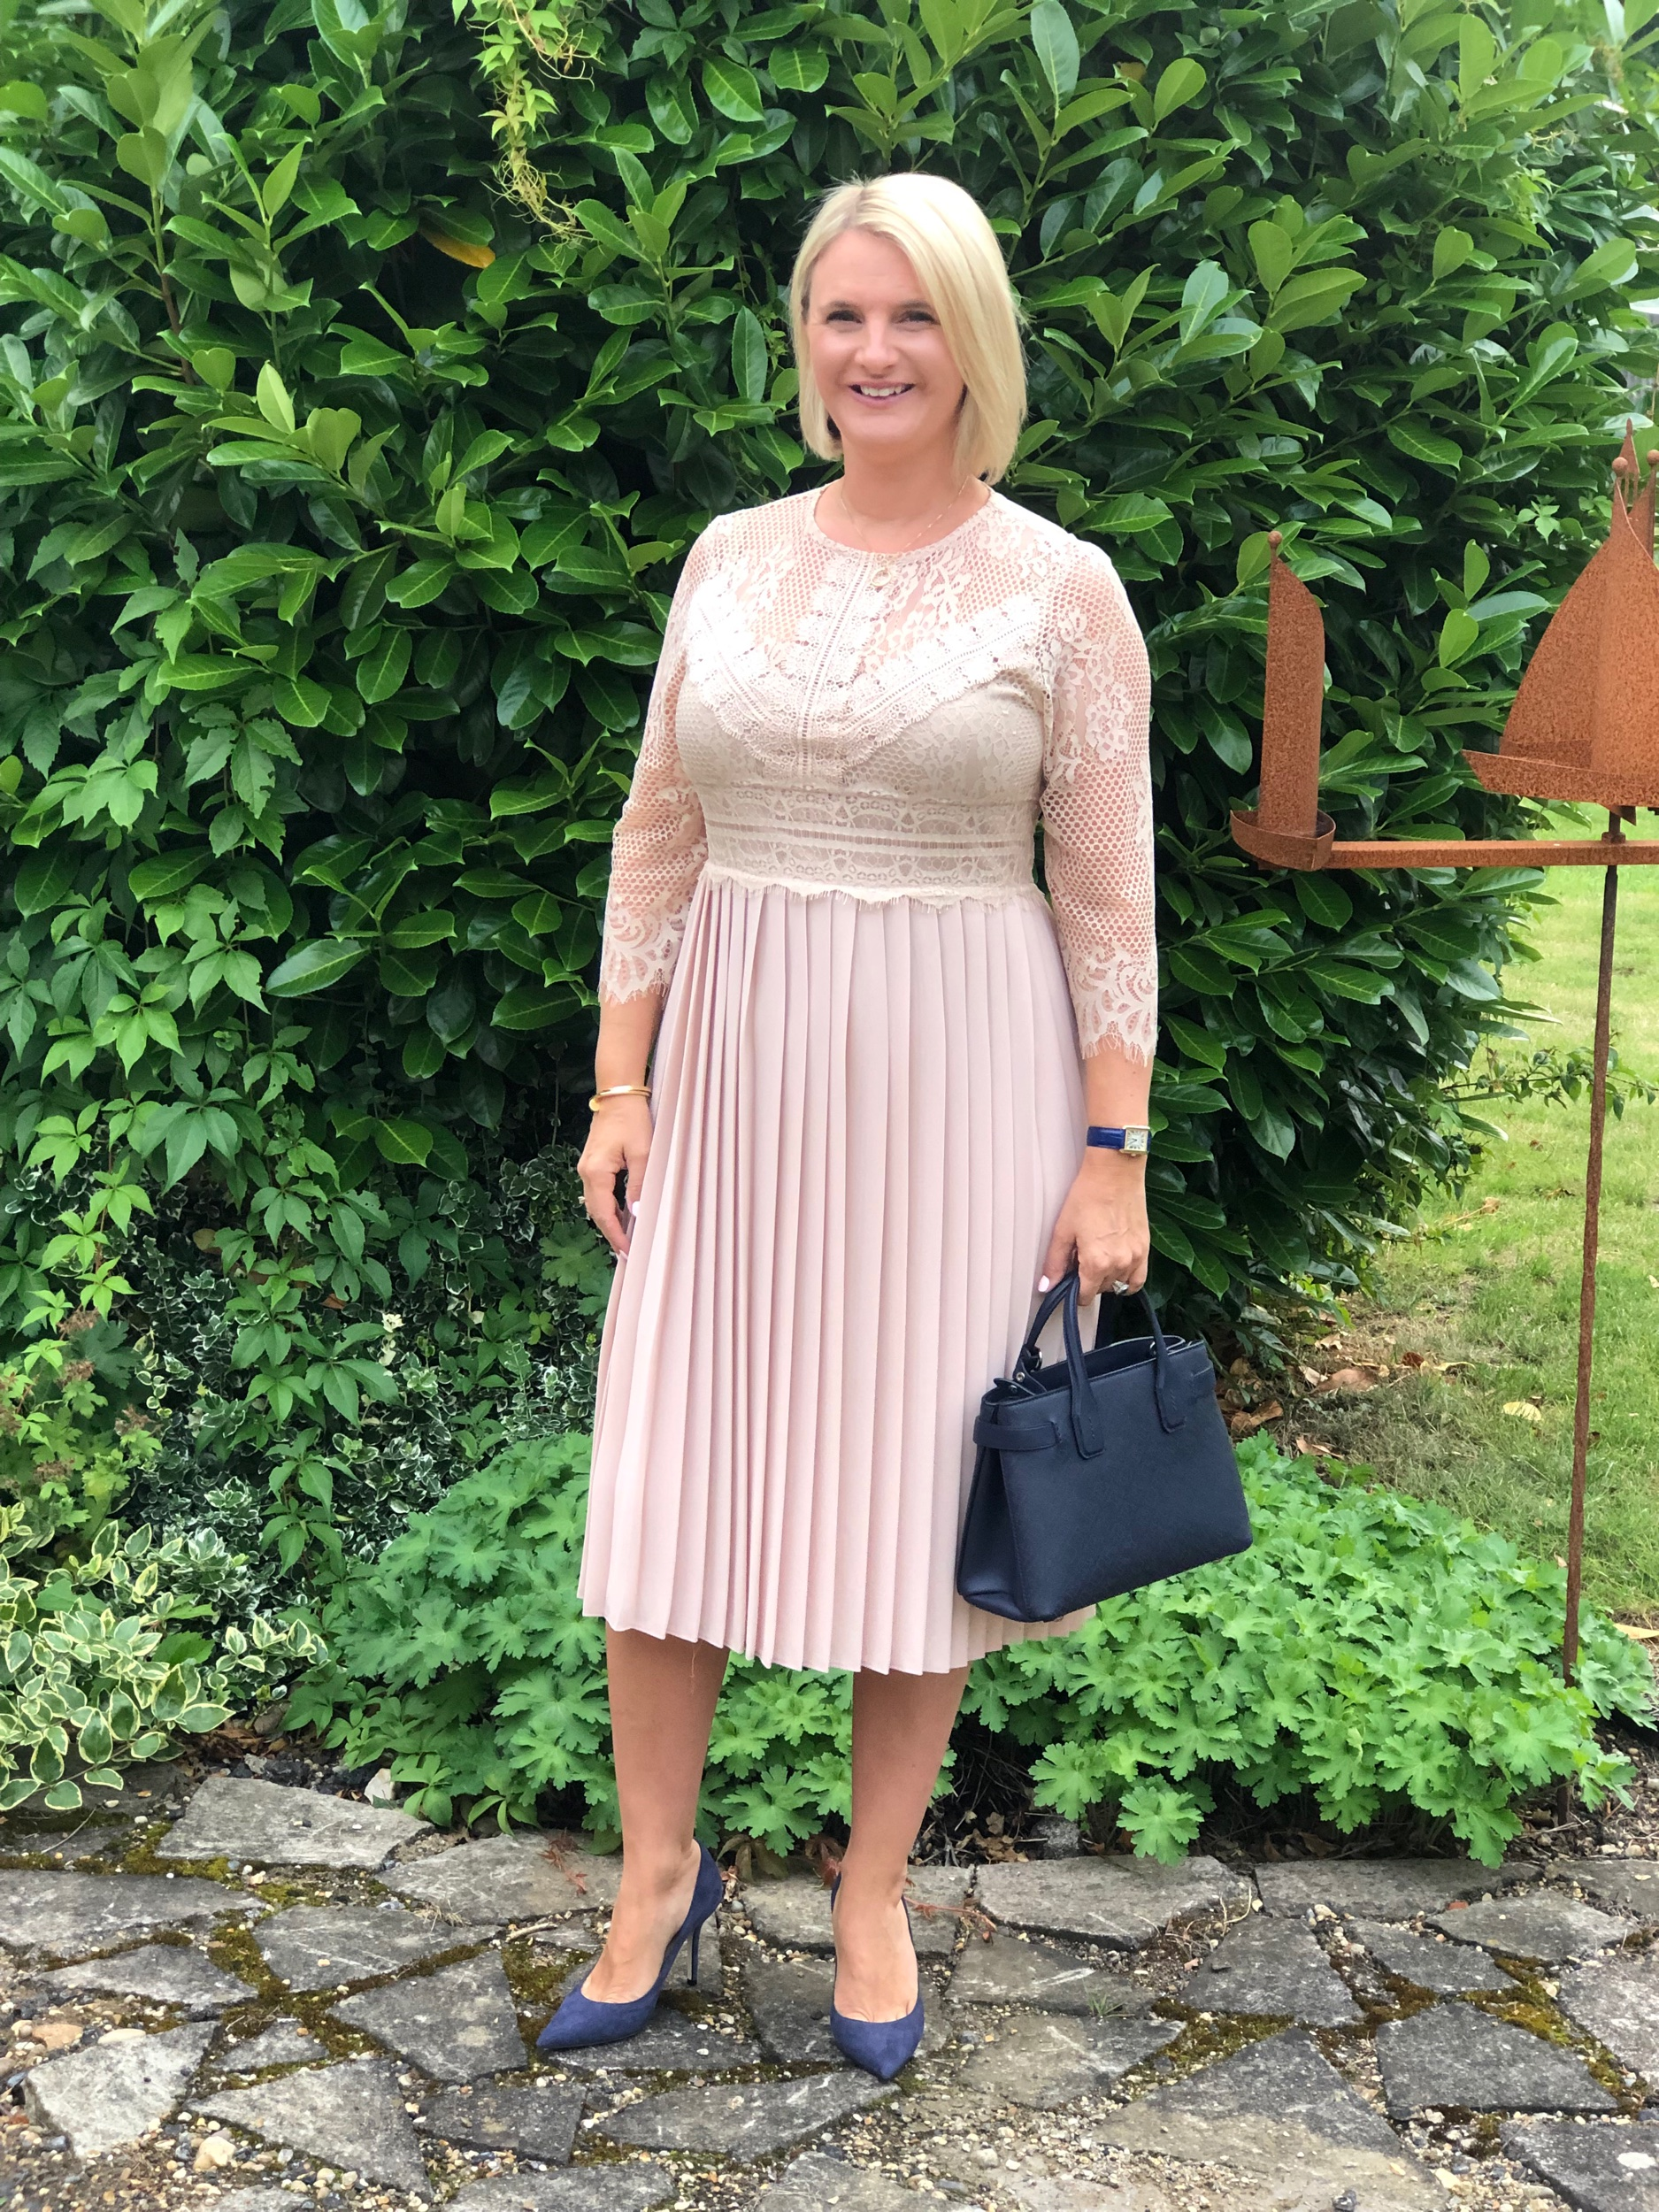 Dress from Zara, Shoes from Jimmy Choo, Bag from Burberry